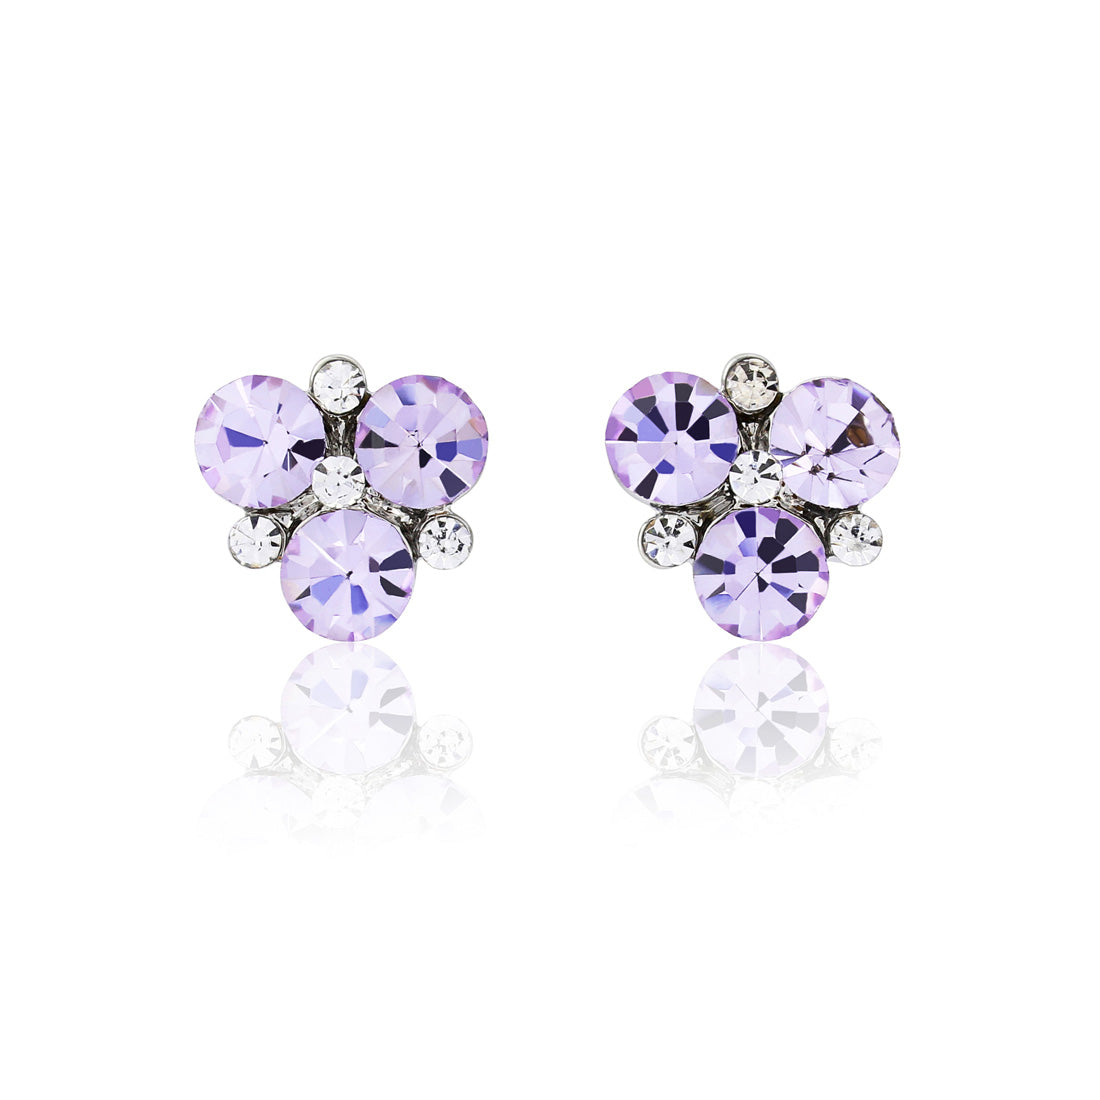 Allure of Lavender Crystal Cluster Stud Earrings